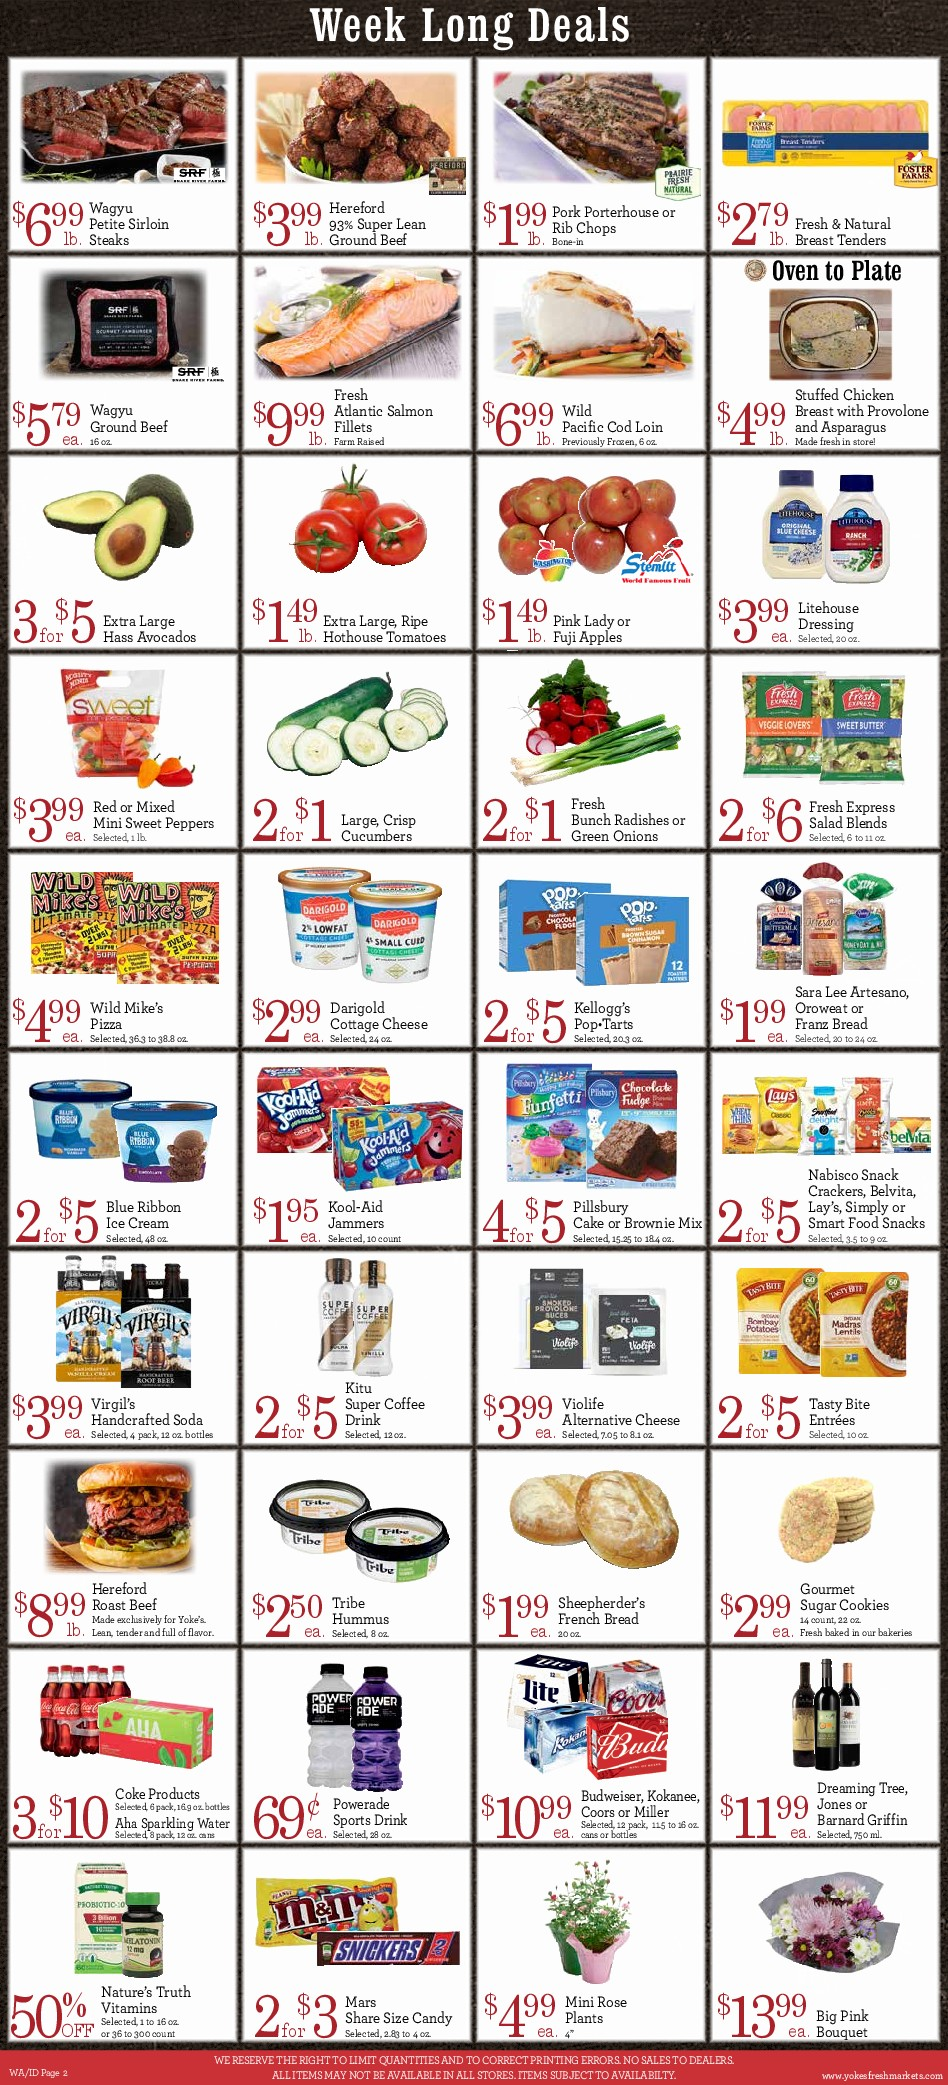 Page 2 of 02.24.21 Weekly Ad